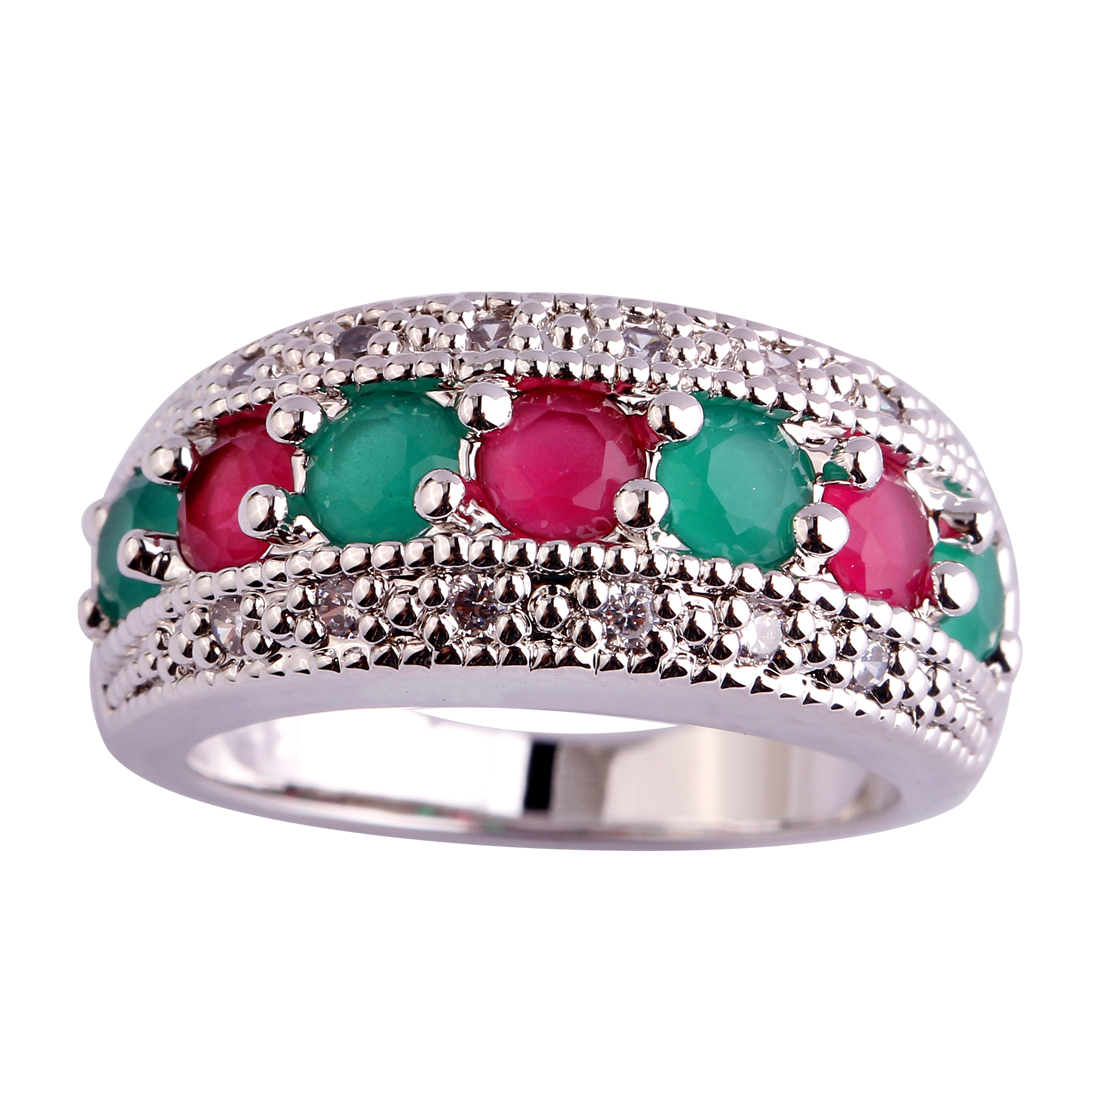 Pink Silver Round Cut Diamond Fashion Ring Size 7 Fashion Women Round Cut Green